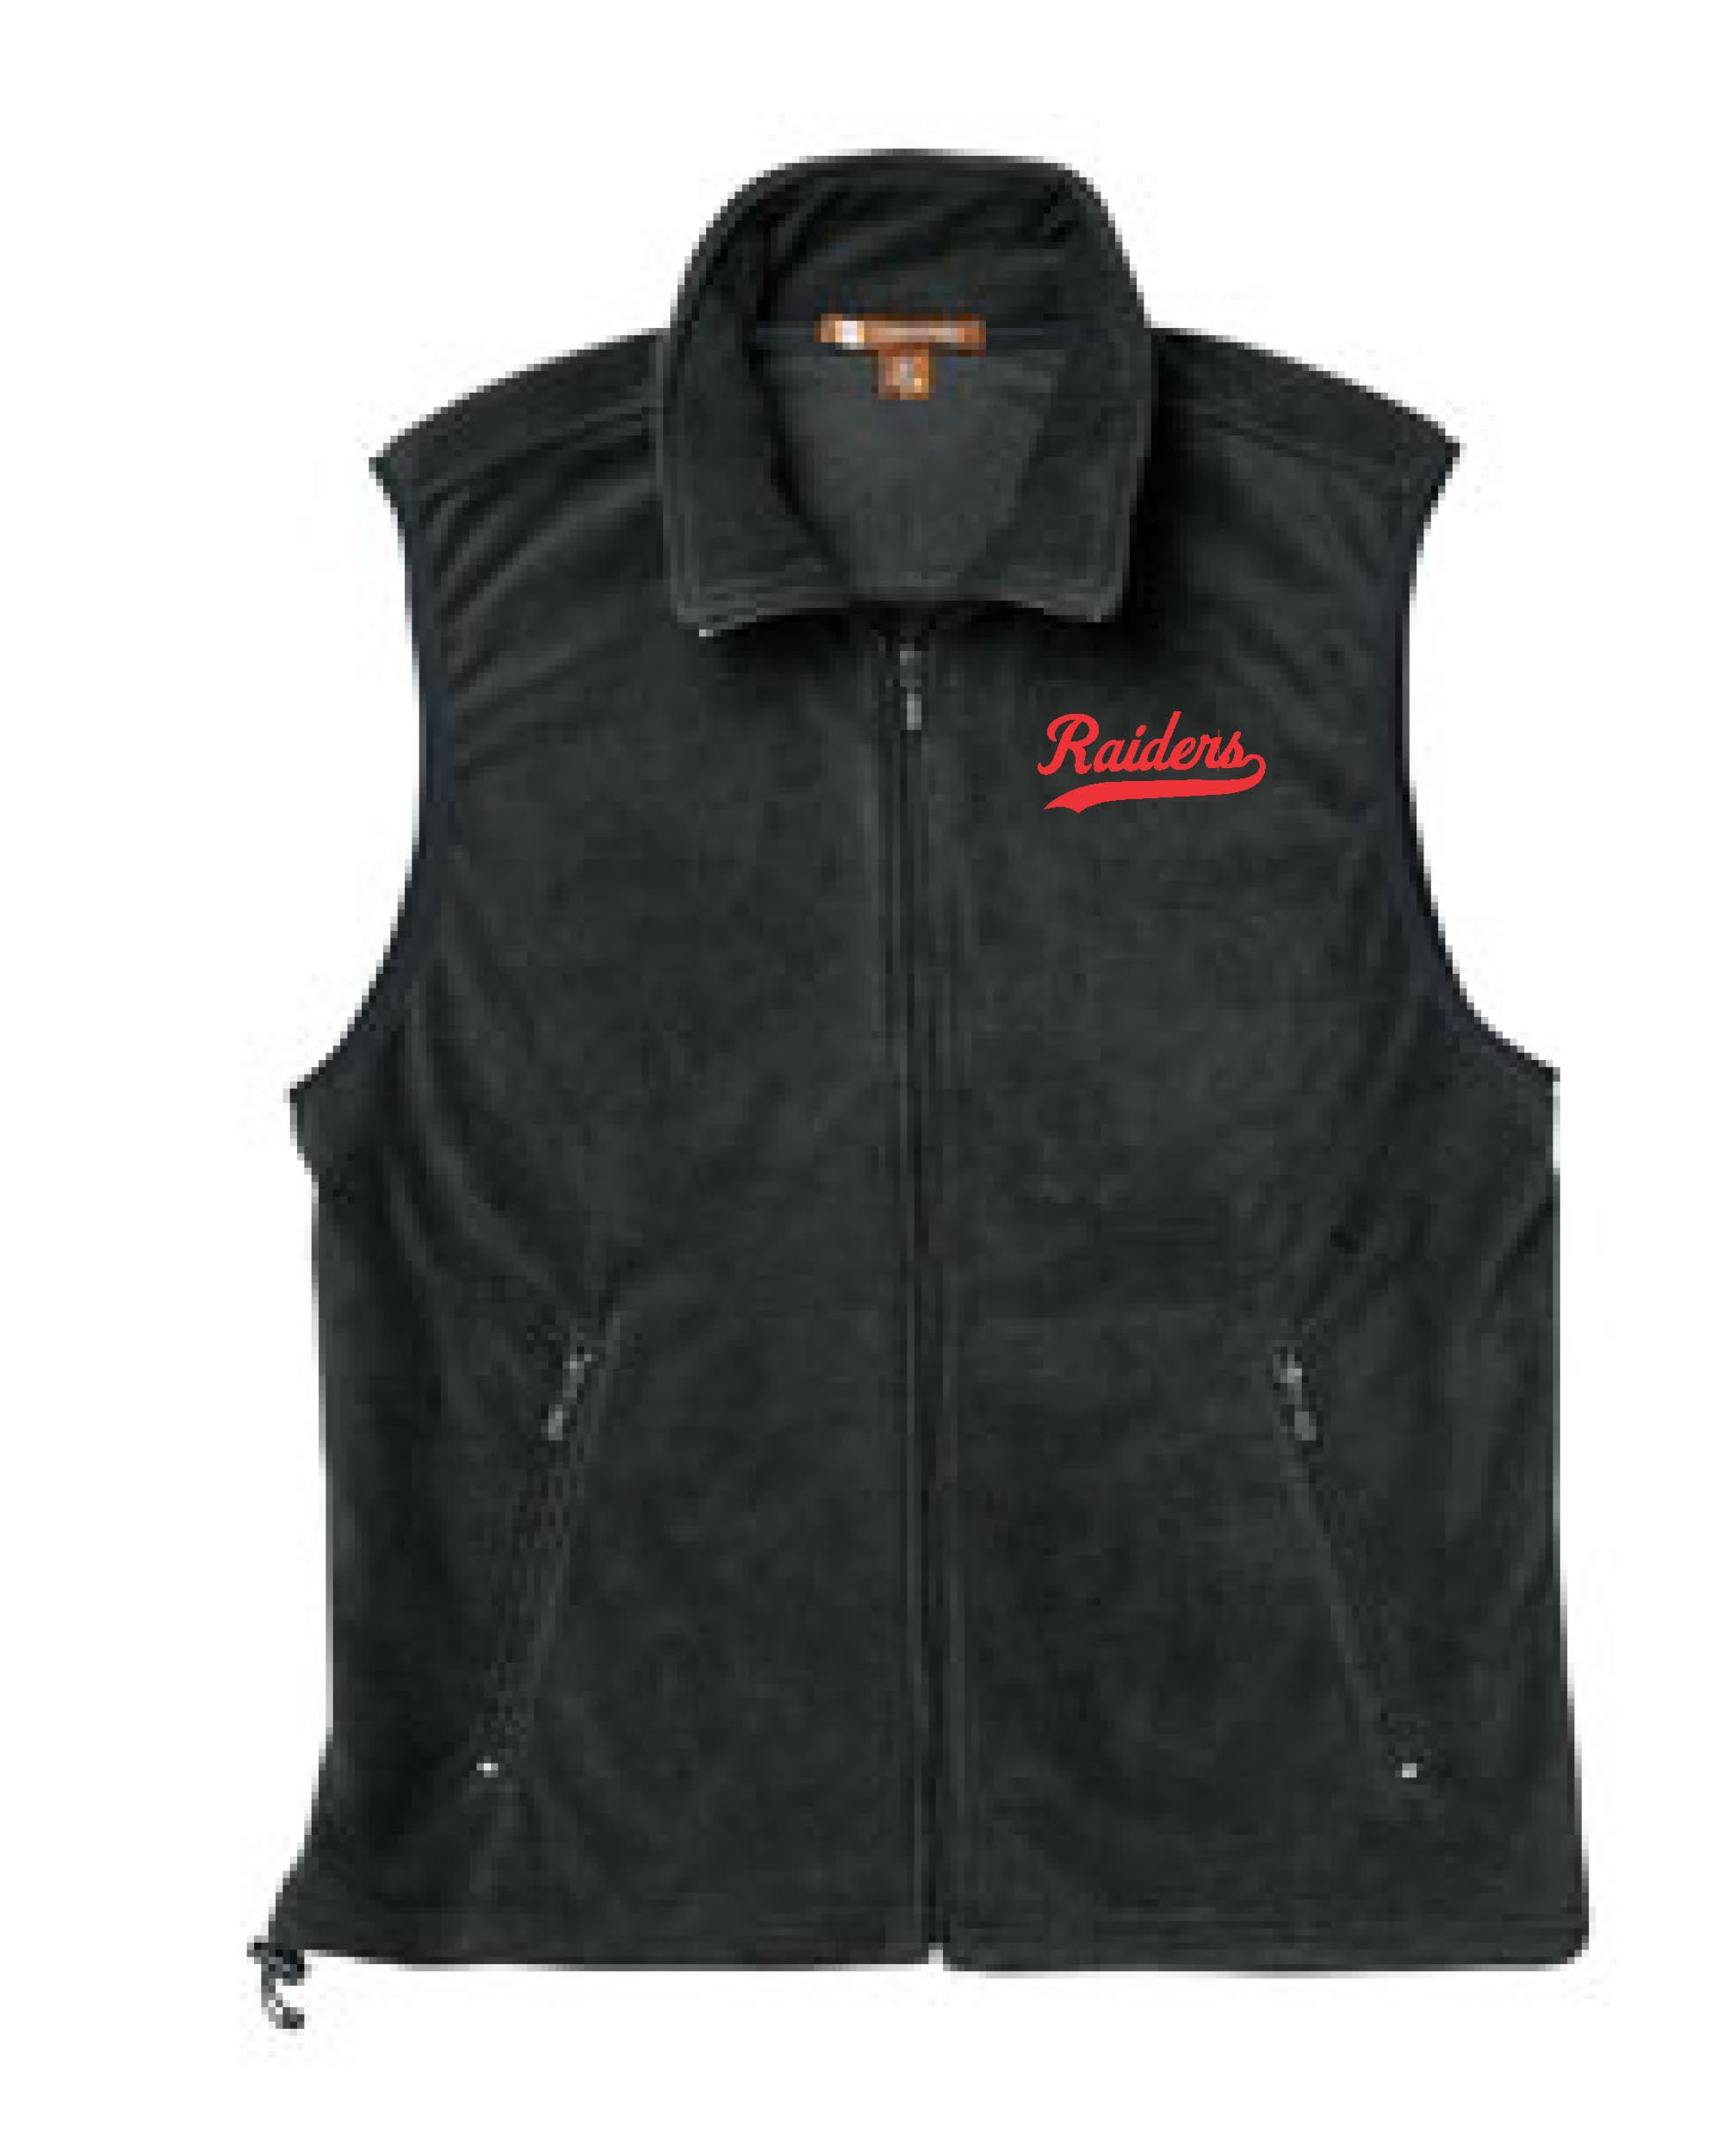 Raiders Full Zip Fleece Vest